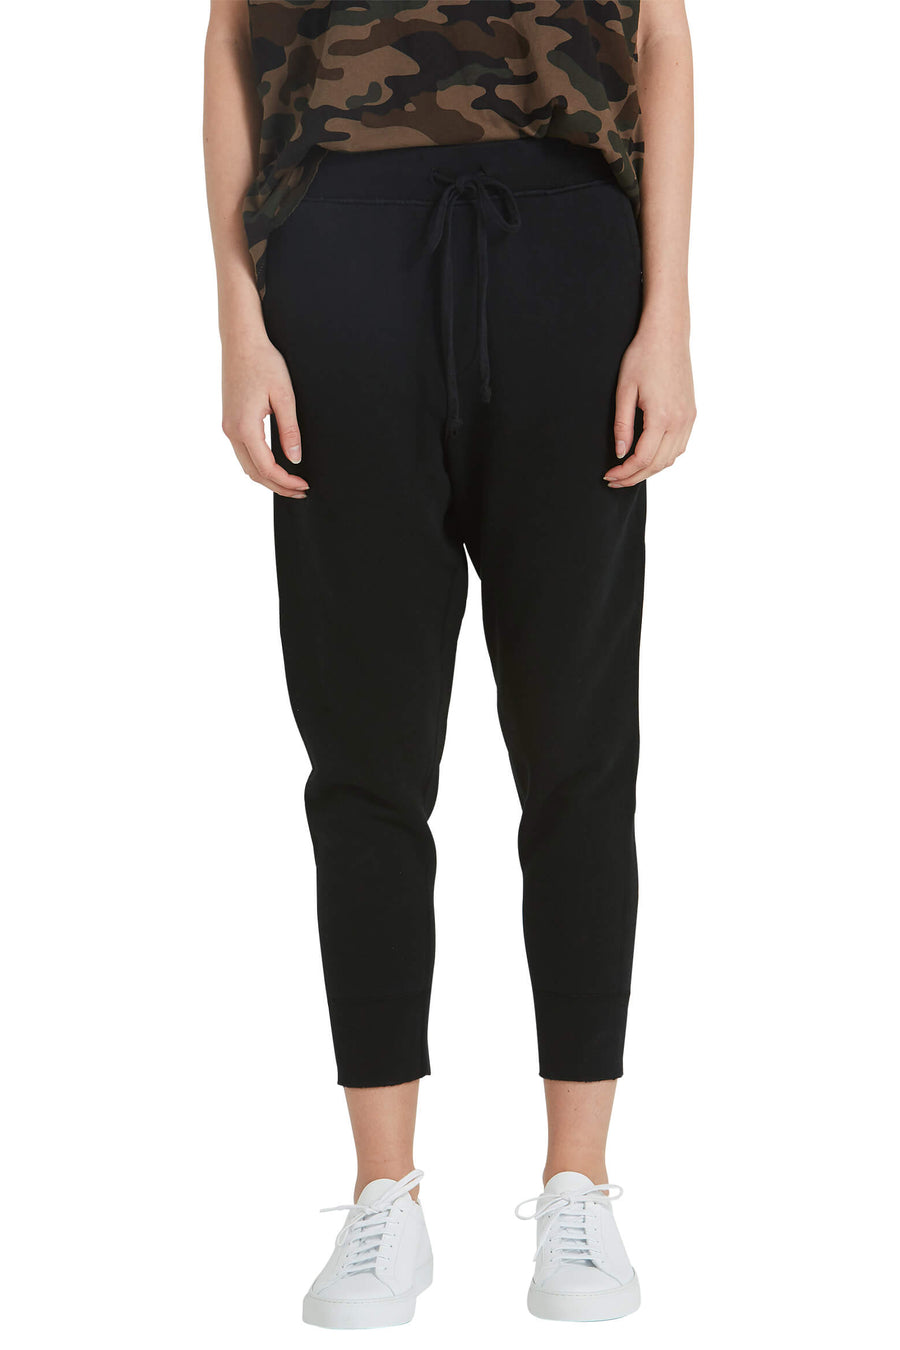 Nili Lotan Nolan Pant in Black from The New Trend